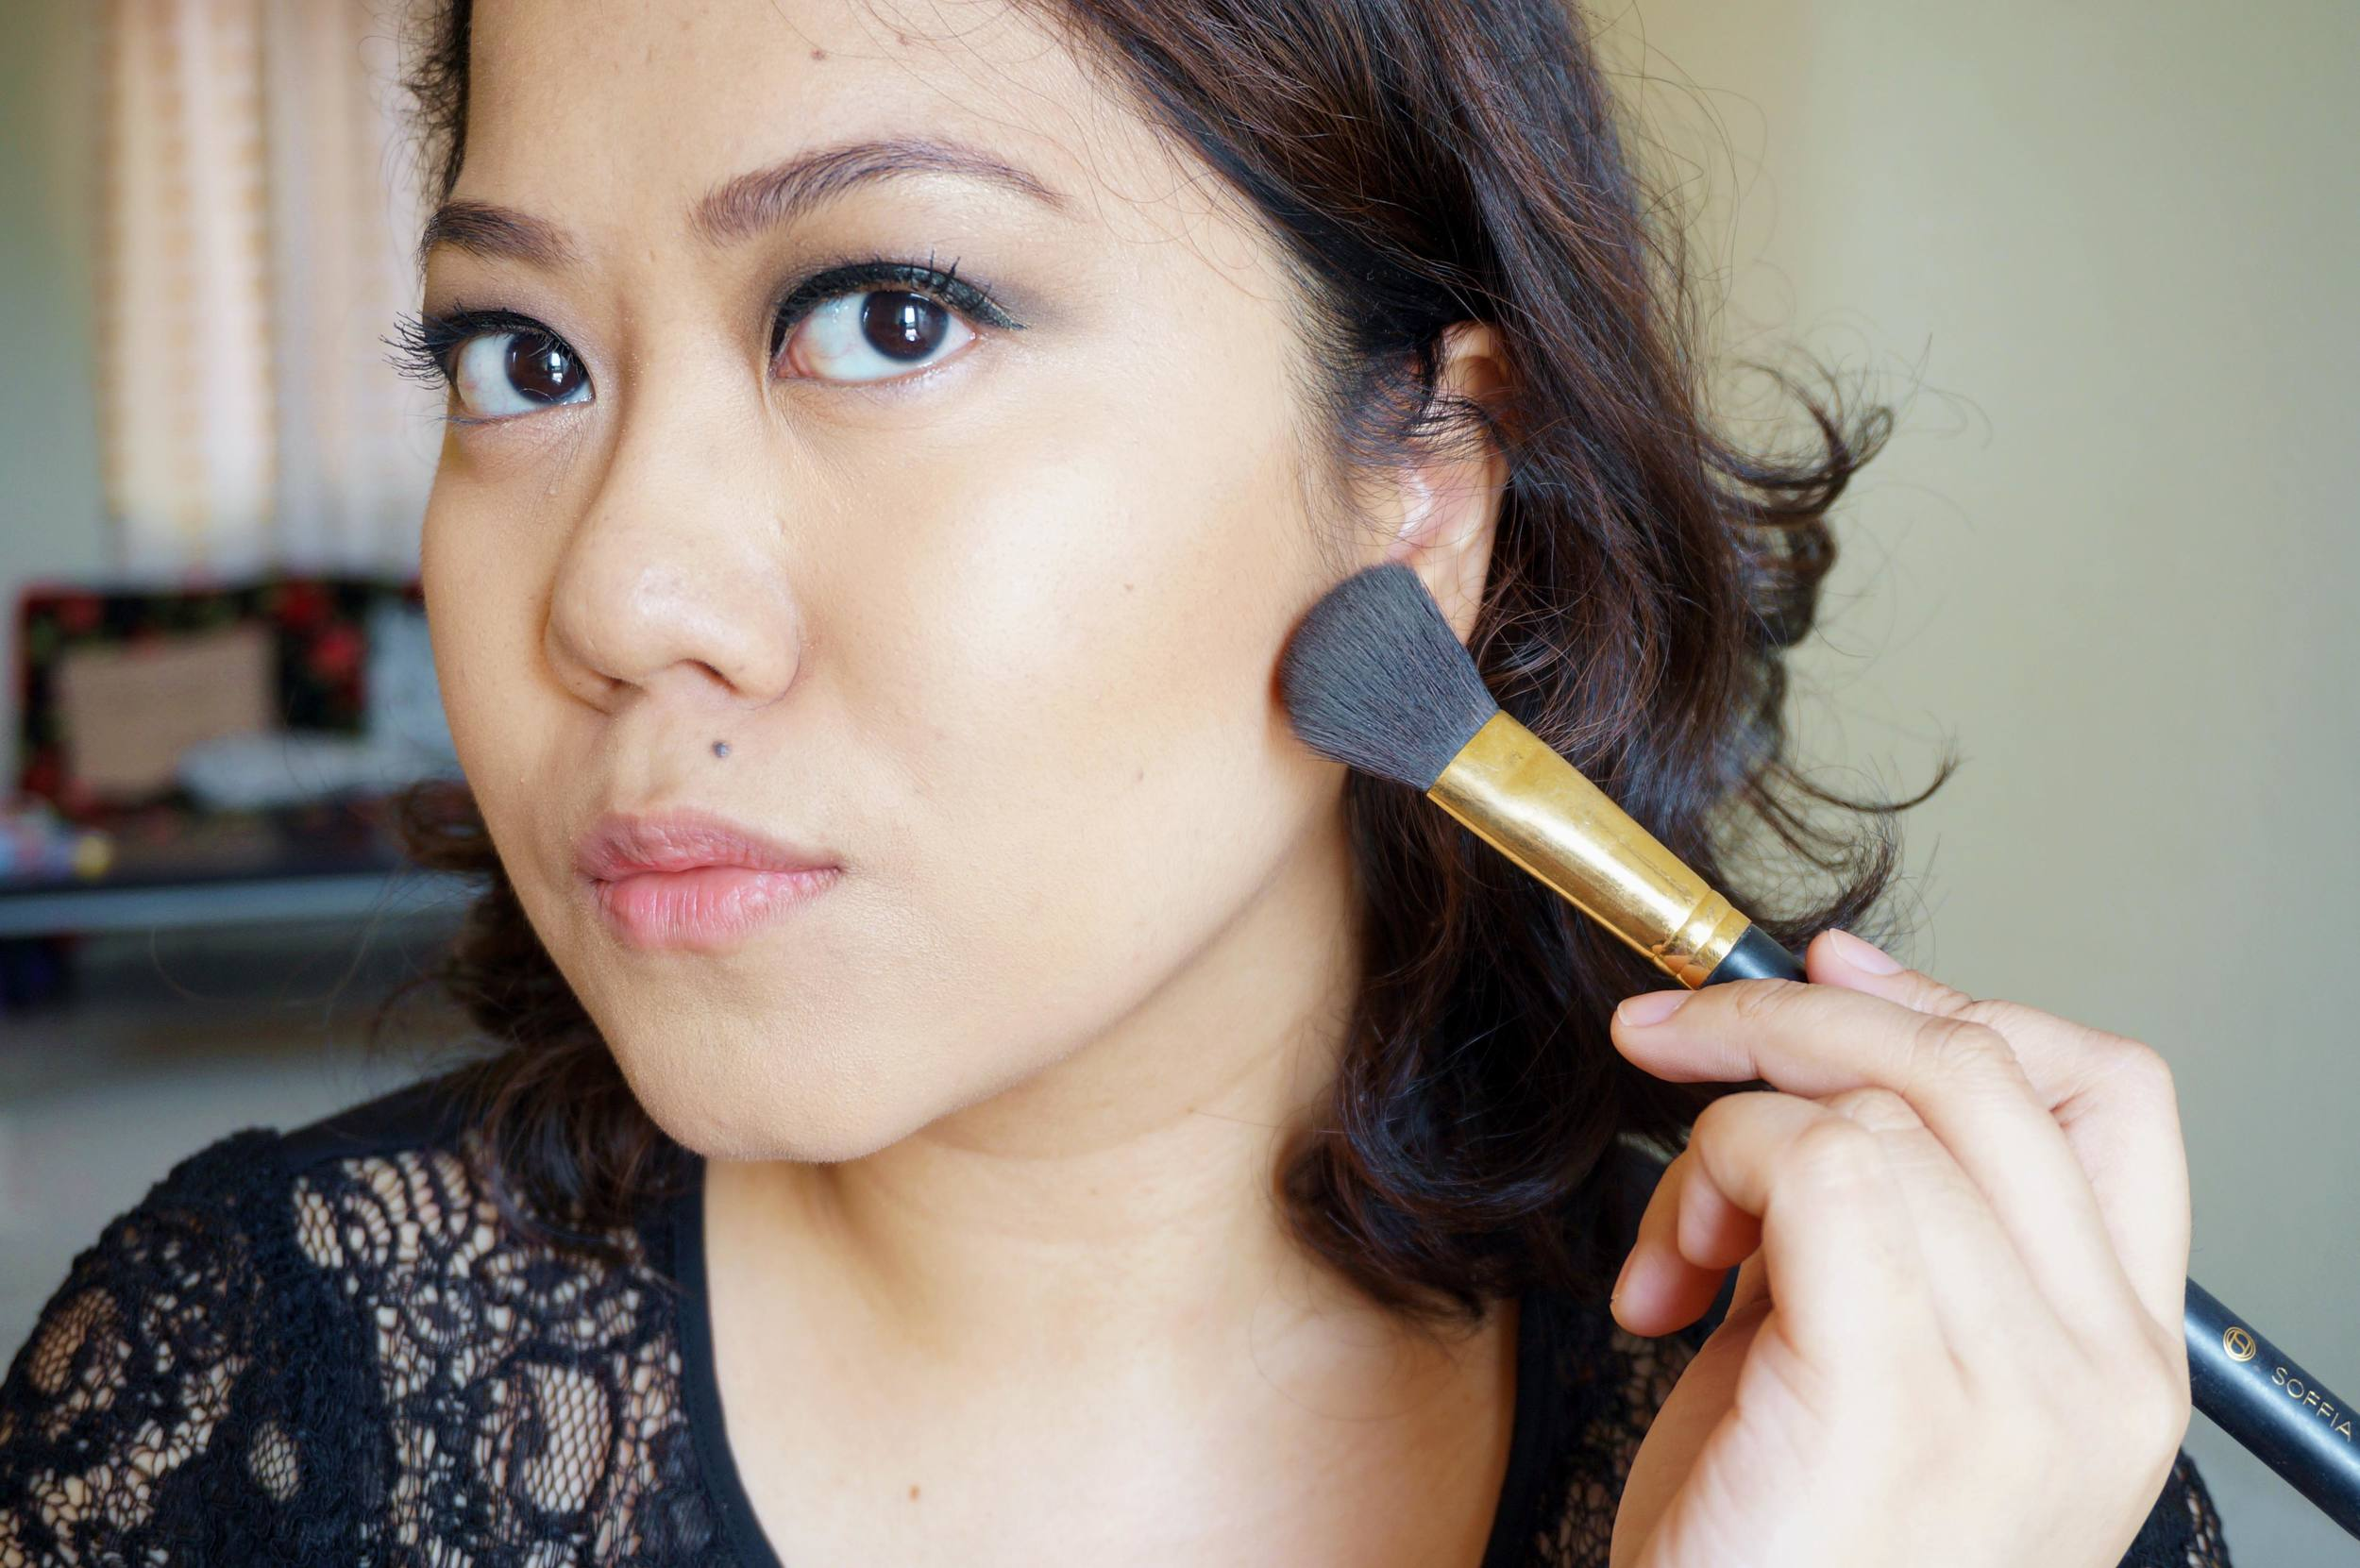 Your contouring should be barely visible, but should show up. The key is to blend out any harsh edges with a clean brush when you're done.